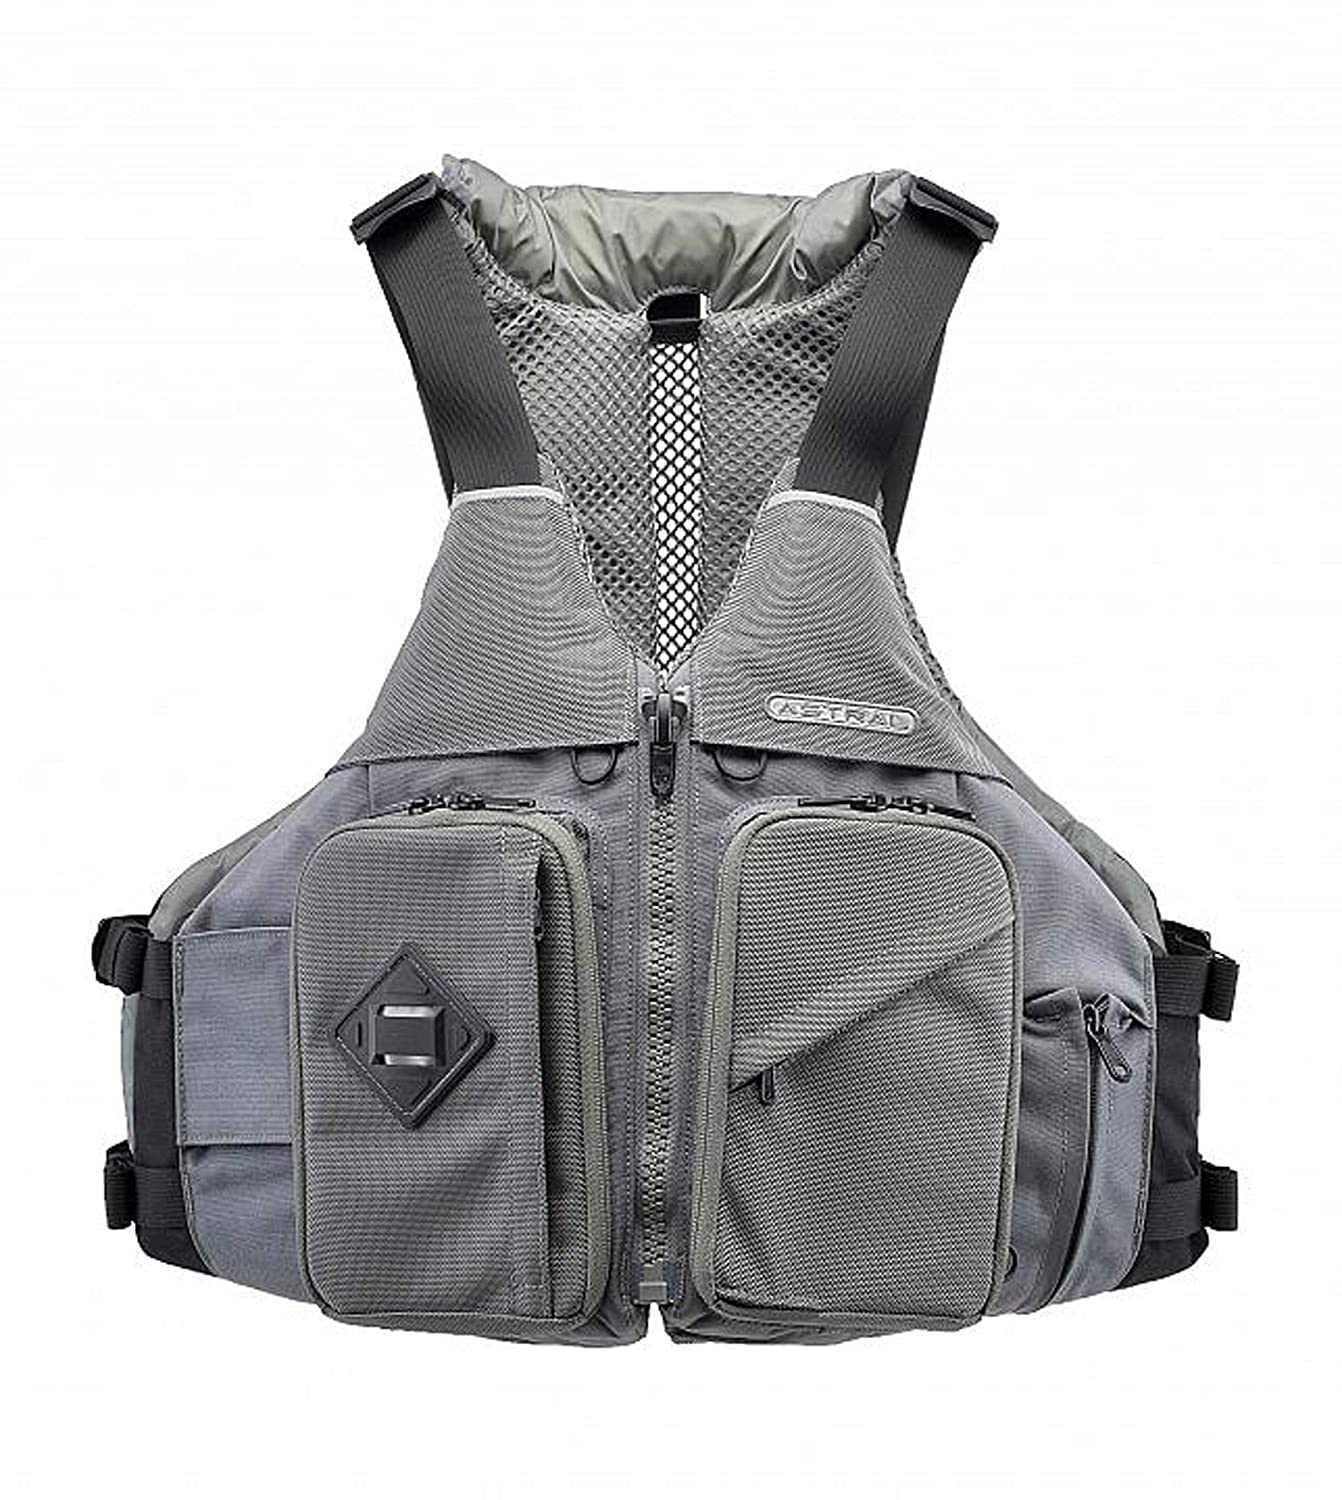 Astral Ronny Fisher Life Jacket PFD for Fishing, Recreation, and Touring Kayaking